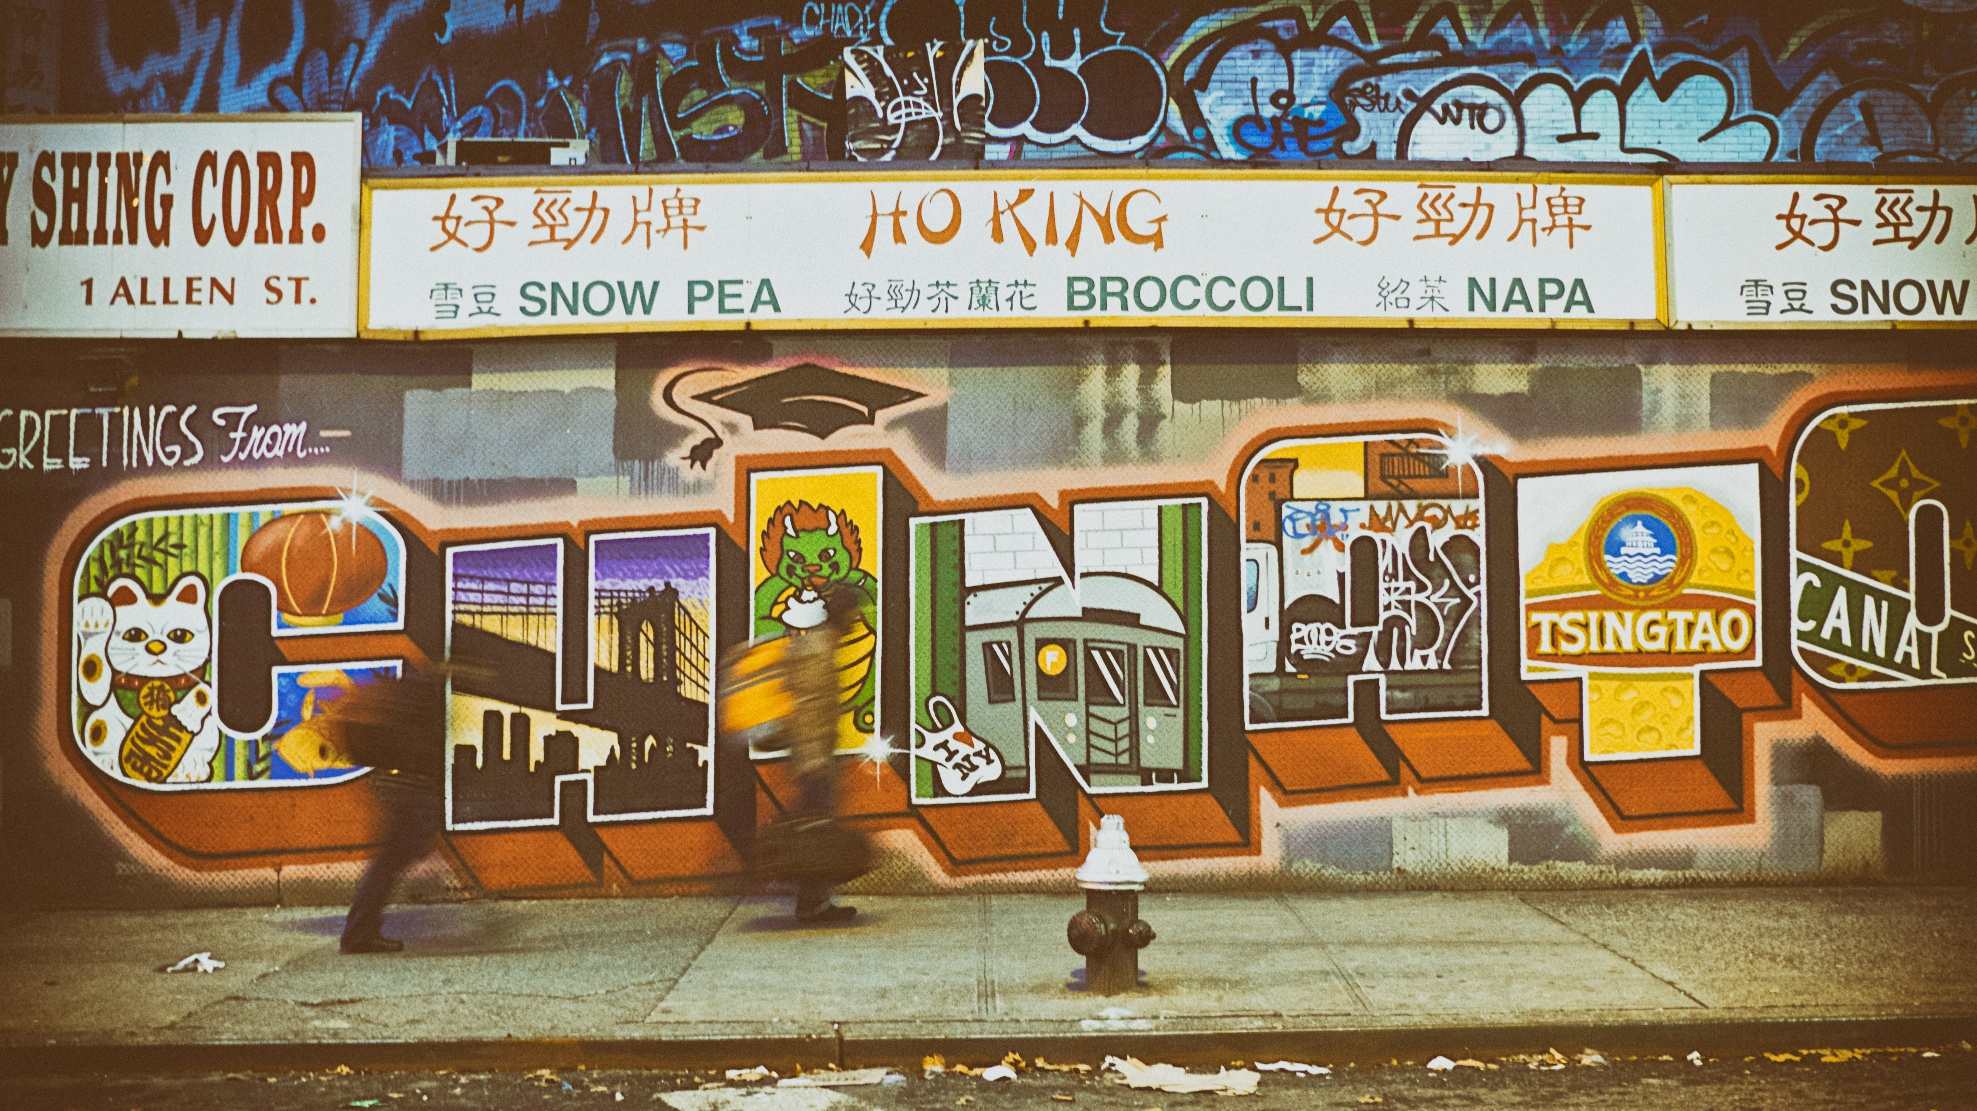 Chinatown Mural by Ryan Vaarsi, January 19, 2015.